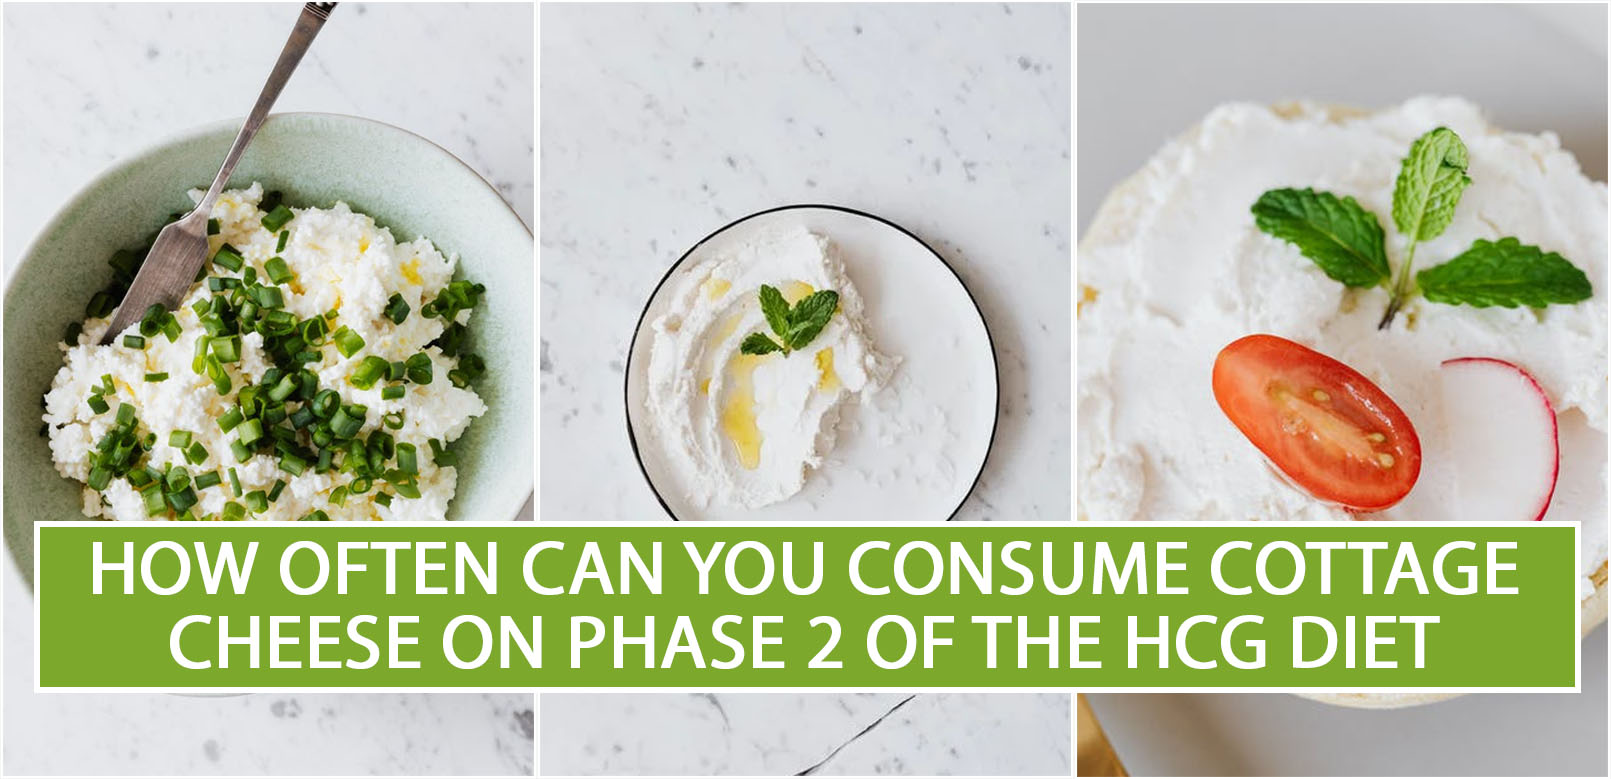 HOW OFTEN CAN YOU CONSUME COTTAGE CHEESE ON PHASE 2 OF THE HCG DIET